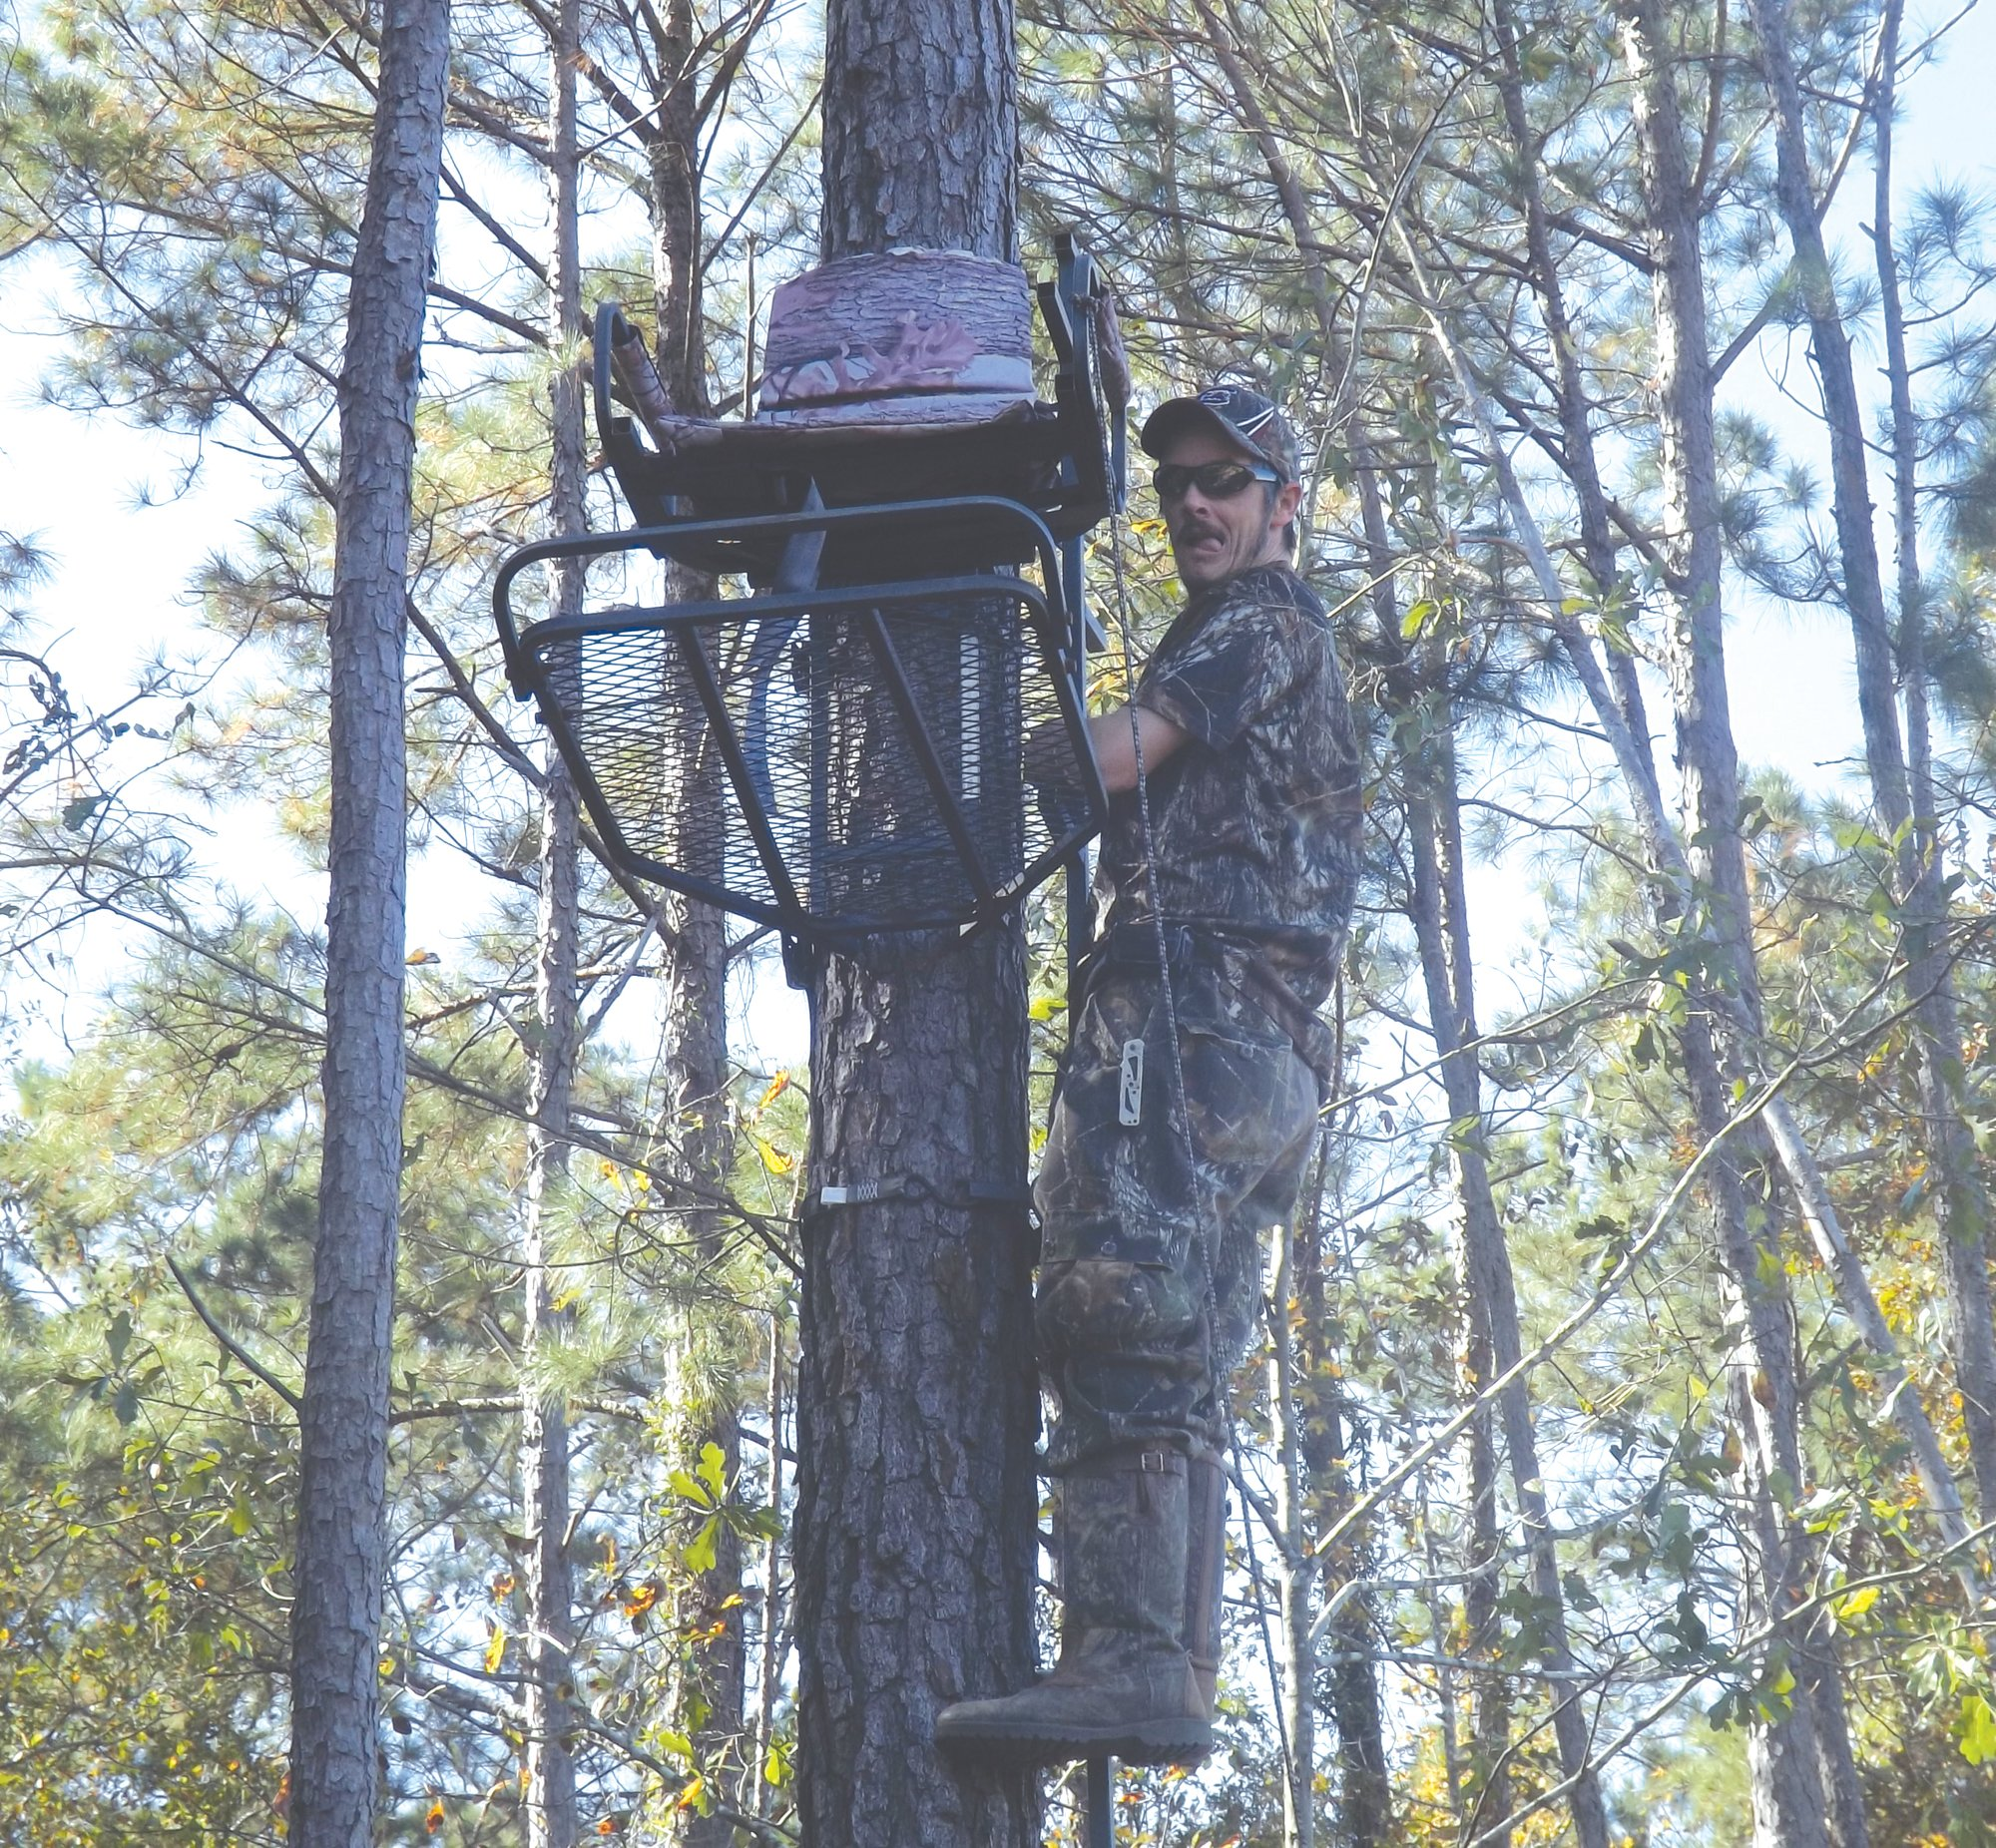 Clayton Geddings checks out a deer stand before the season starts.